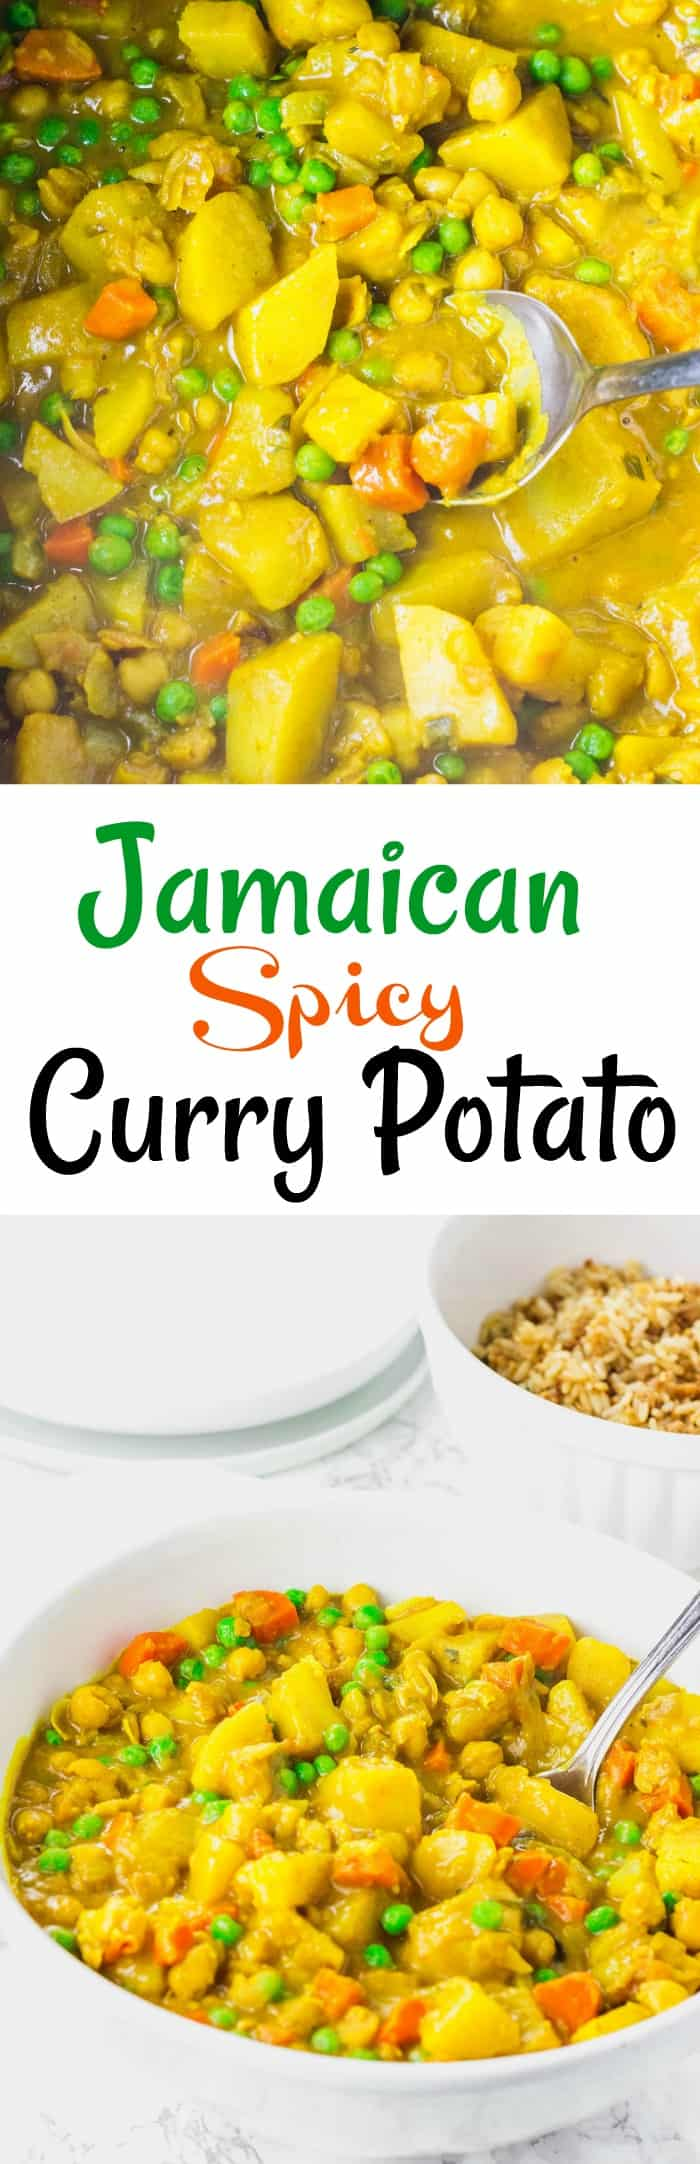 Jamaican Spicy Curry Potato